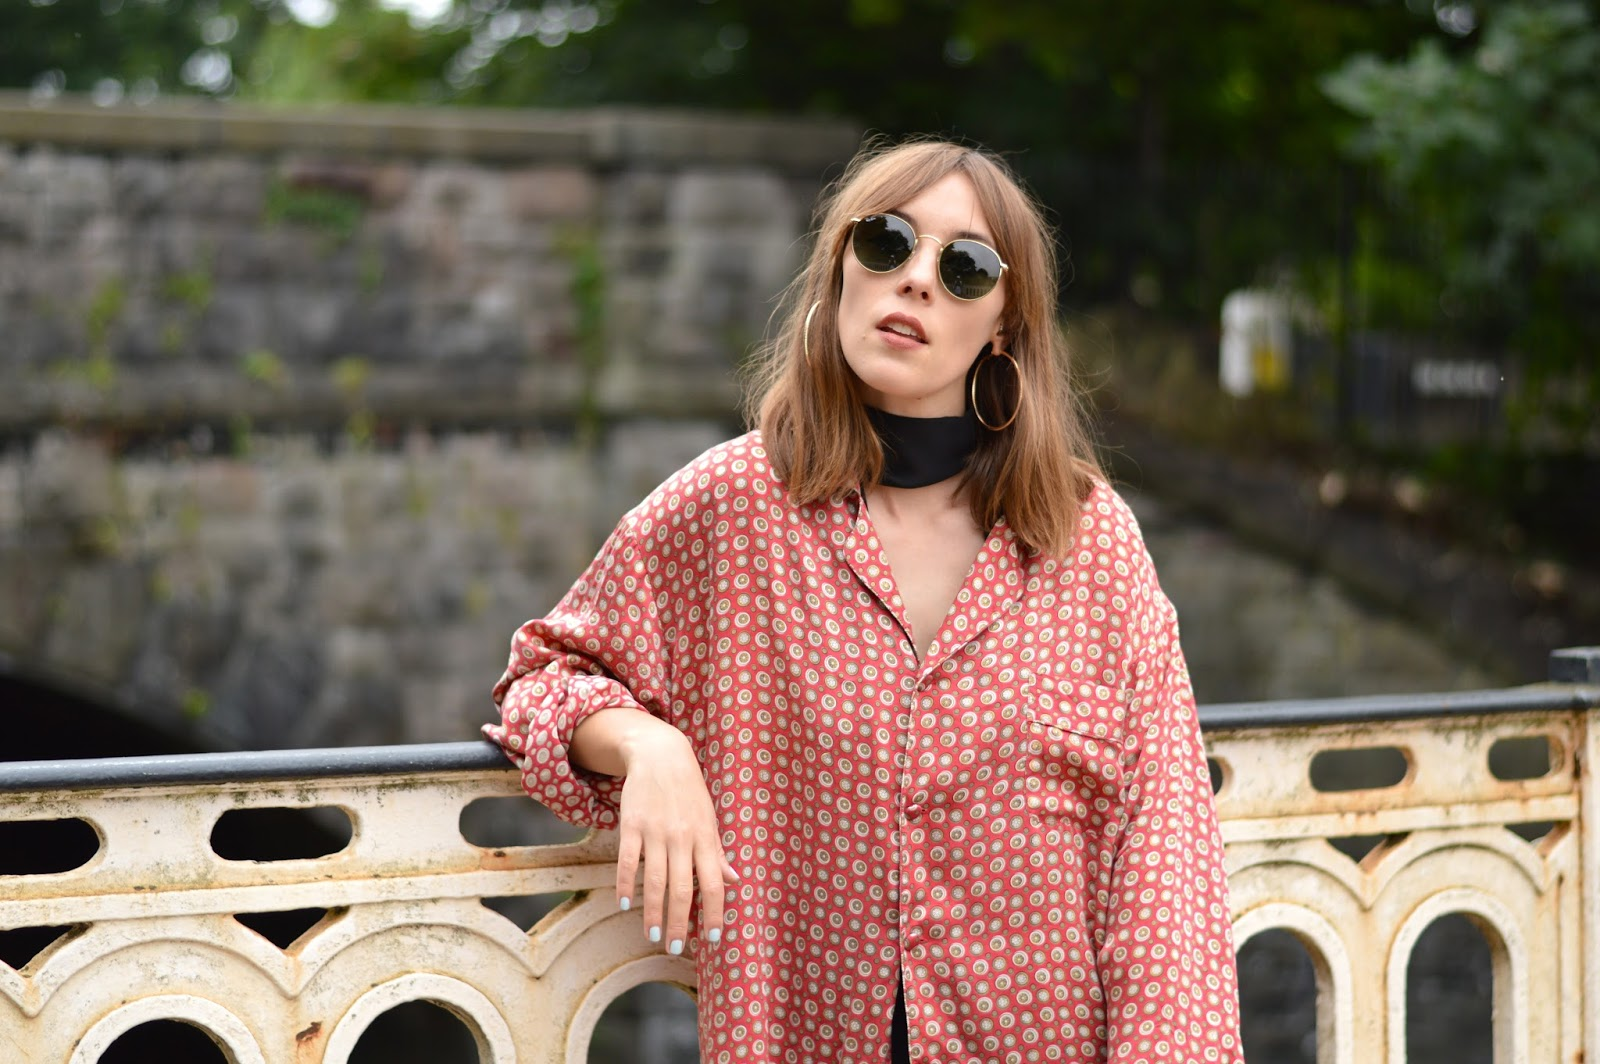 Seventies pyjama style shirt and gold hoops